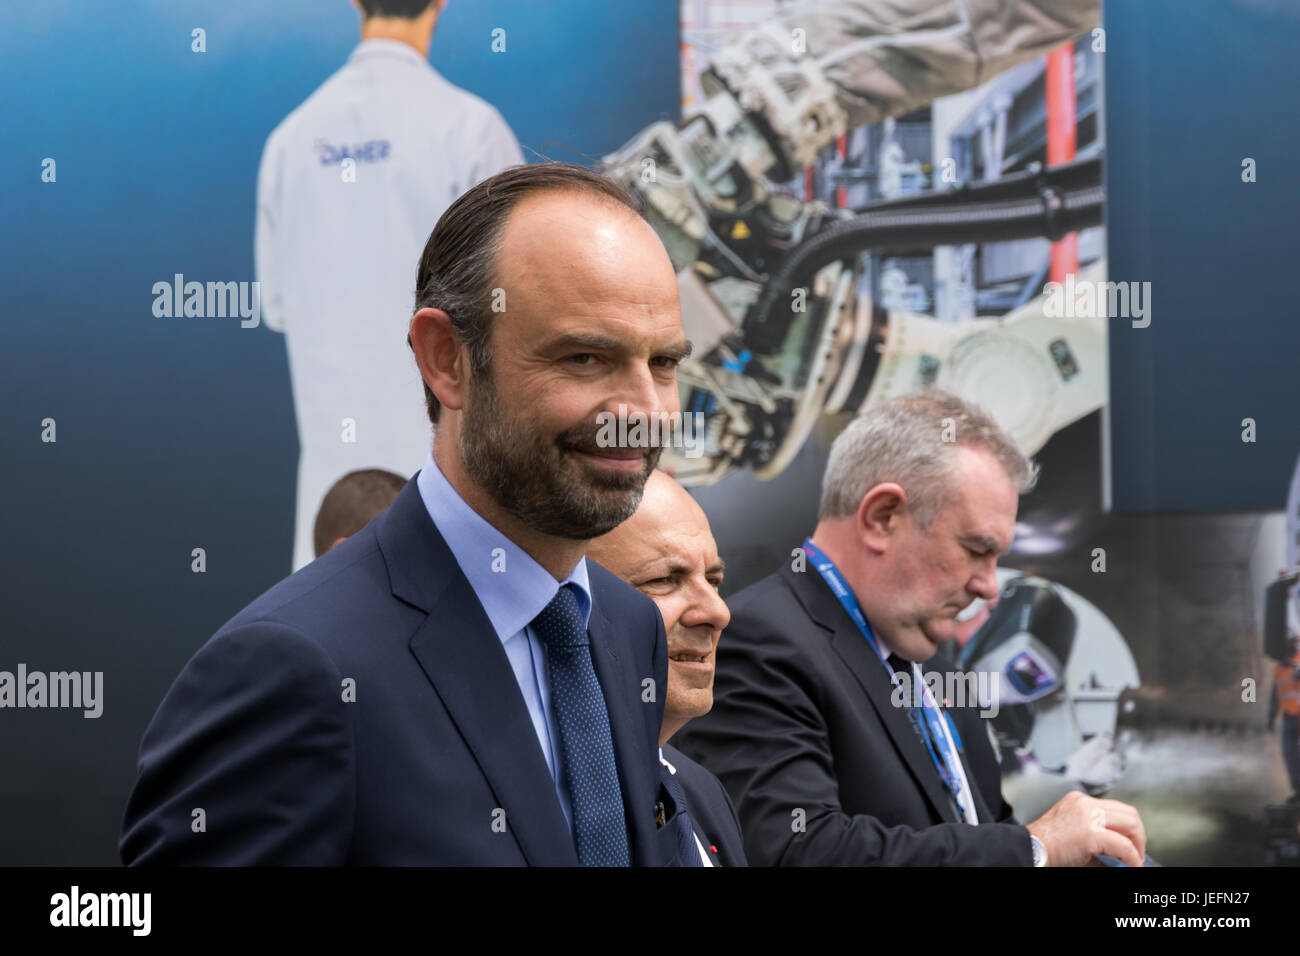 PARIS, FRANCE - JUN 23, 2017: French Prime Minister Edouard Philippe visiting various aerospace companies at the - Stock Image